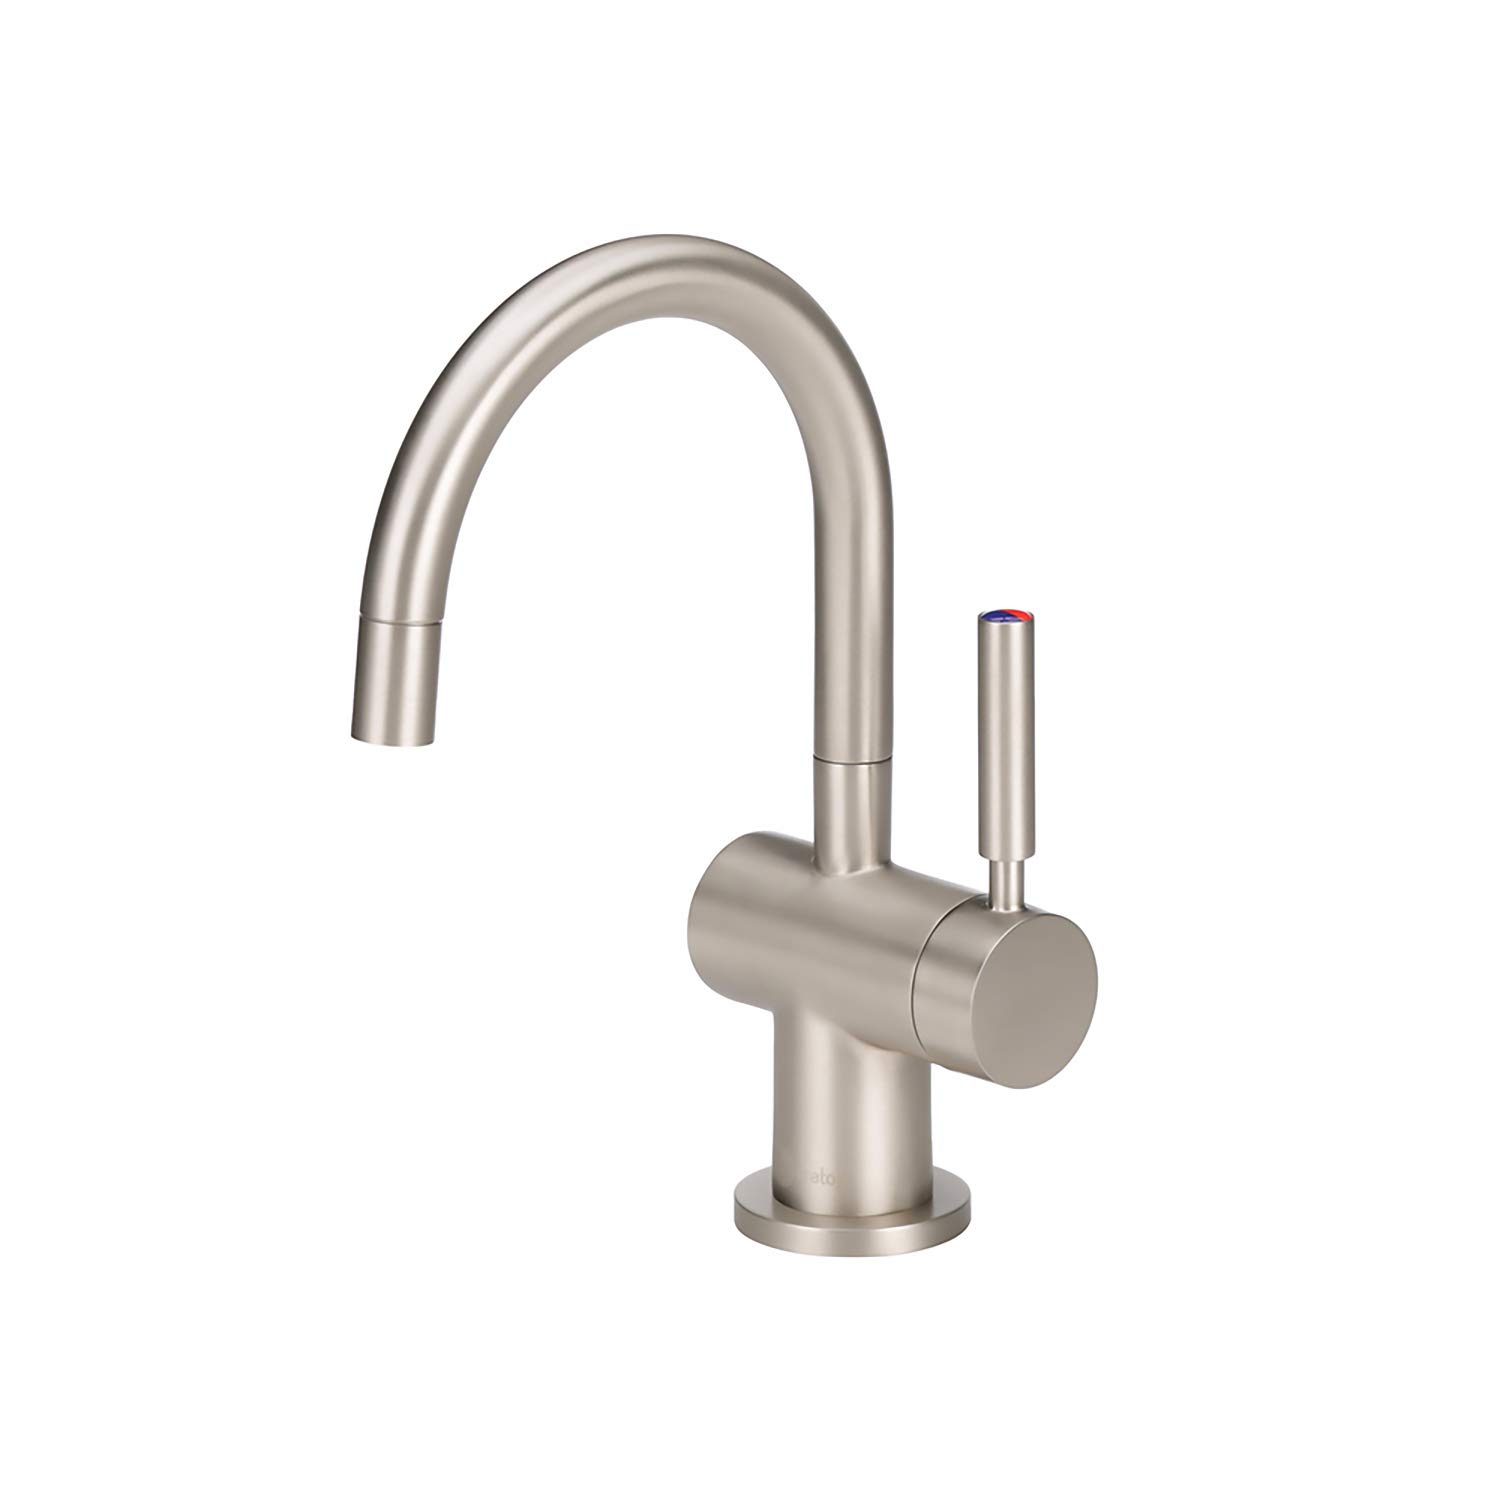 InSinkErator F-HC3300SN Indulge Hot and Cold Water Dispenser, One Size, Satin Nickel by InSinkErator